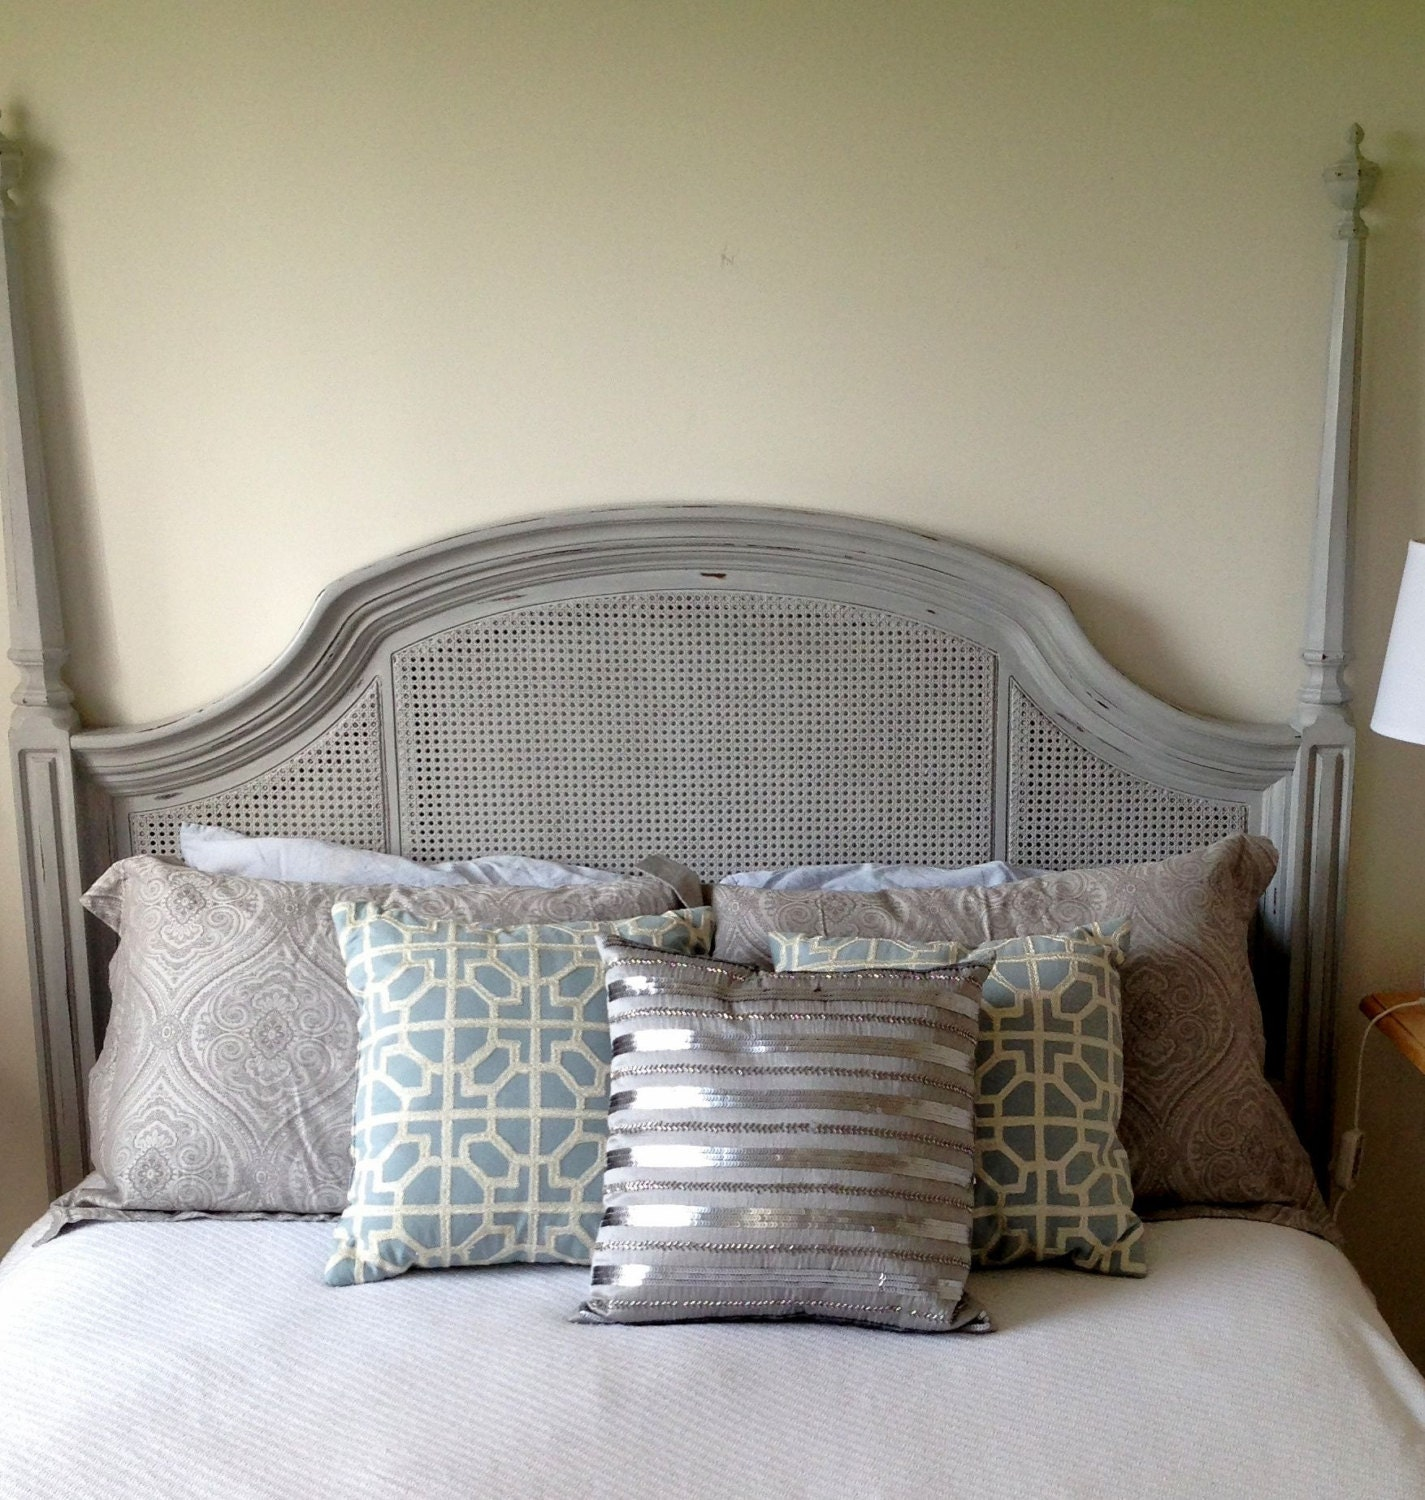 Queen cane headboard painted annie sloan distressed paris grey for Painted headboard